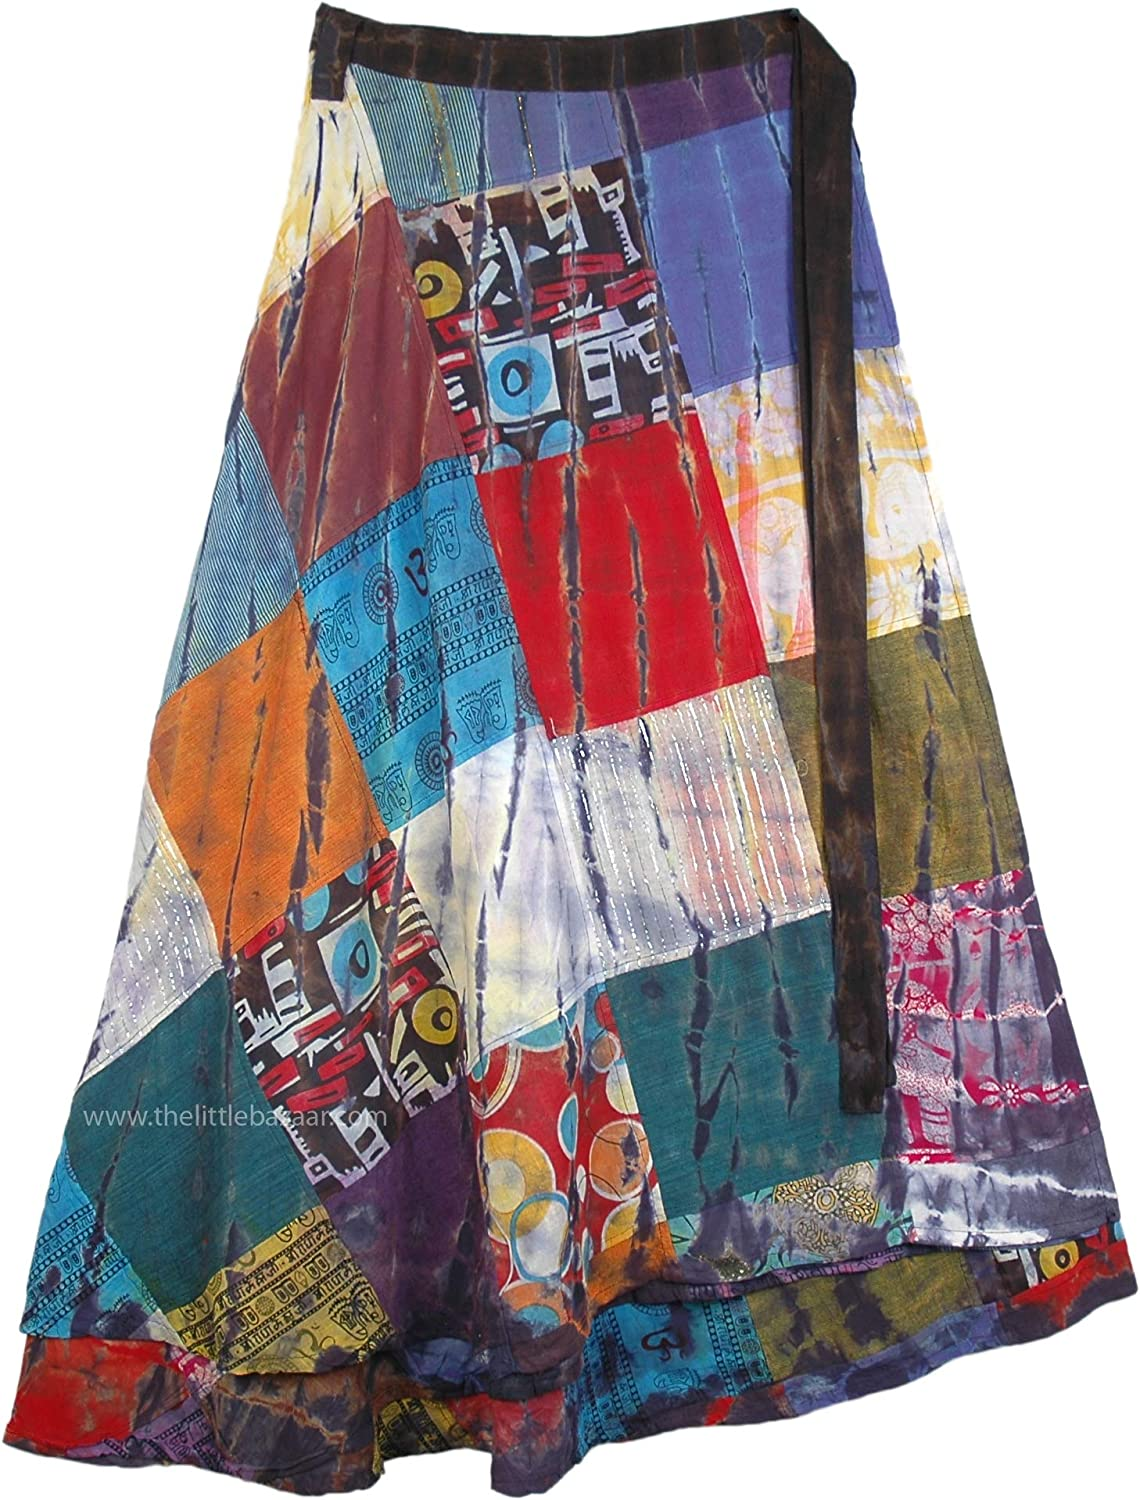 Patchwork Hippie skirt Handmade Hippie Patchwork Skirts Women/'s Skirts Calico Skirt Custom Xmall to plus size 2X 3X Skirts By Phatcatpatch